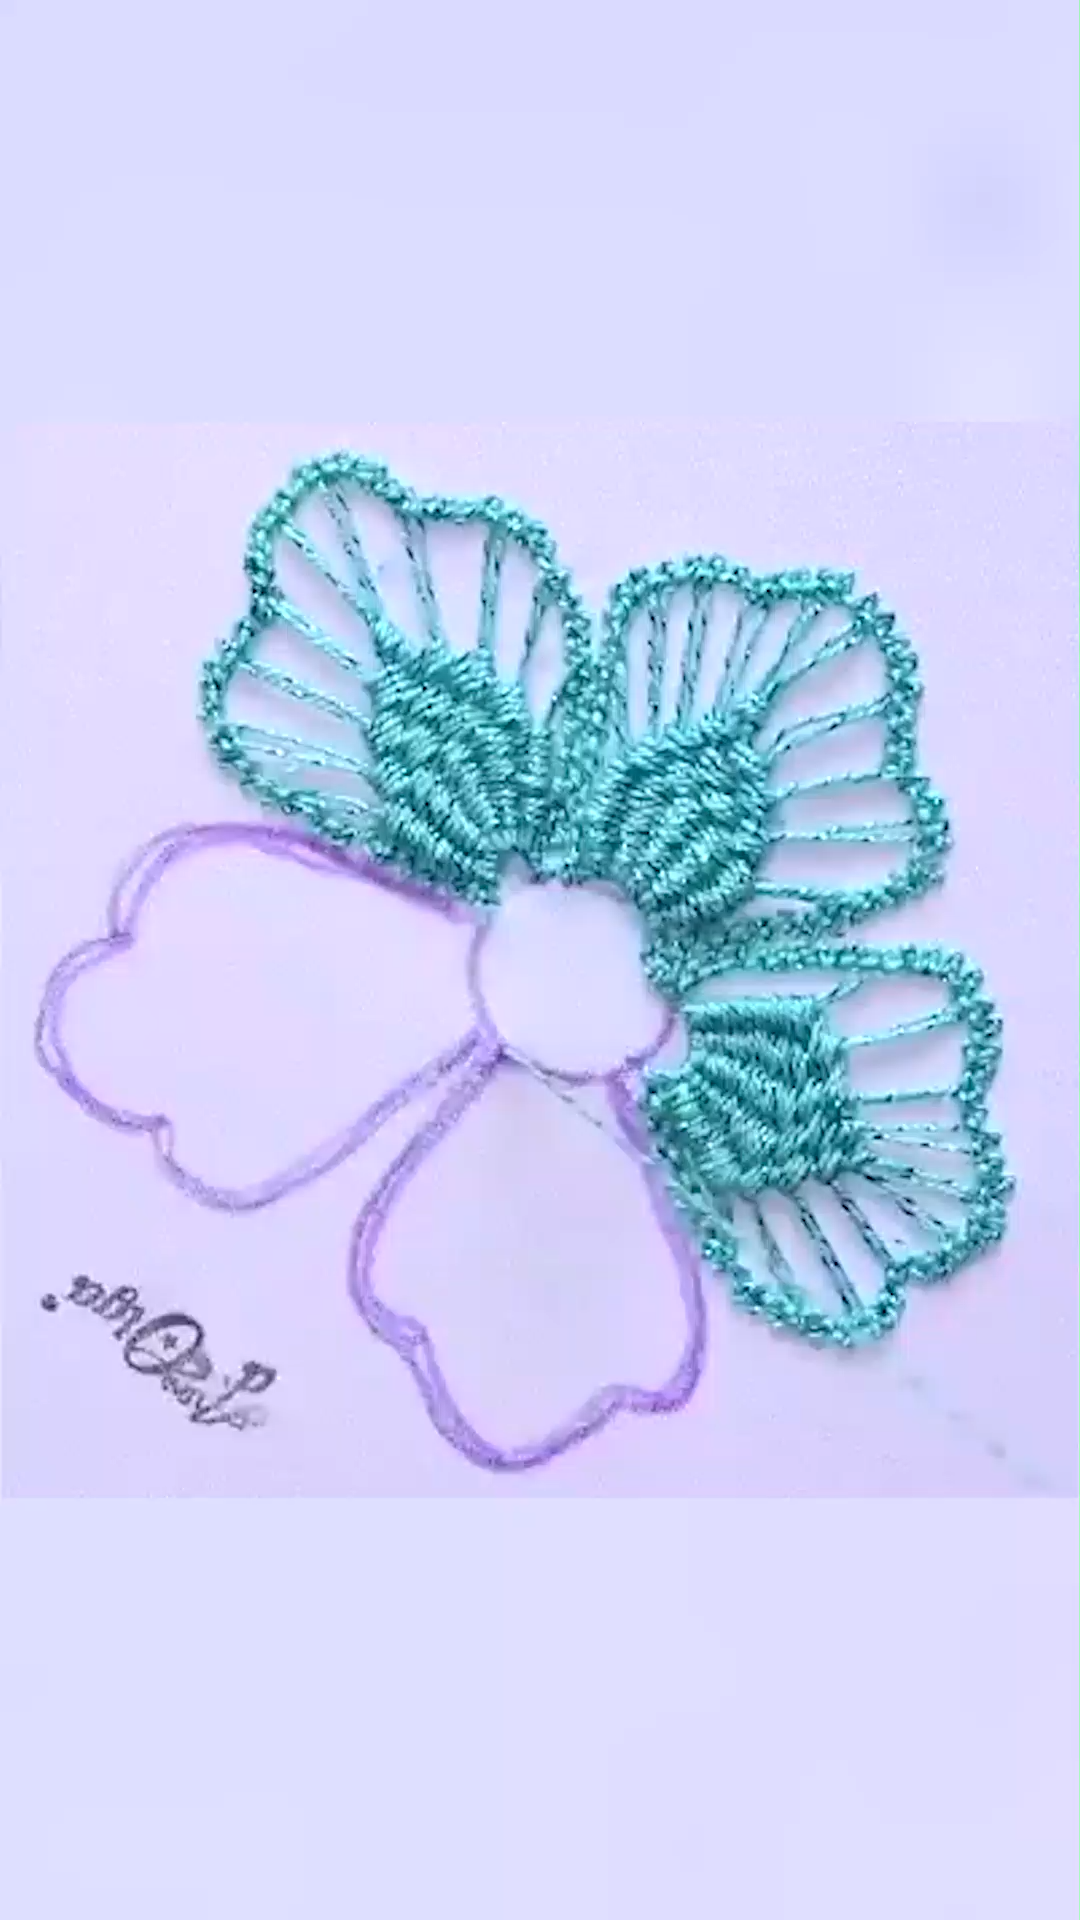 Romanian Macrame Flower How To Embroider A Romanian Macrame Flower Artesd Olga In 2020 Sewing Embroidery Designs Creative Embroidery Embroidery Flowers Pattern